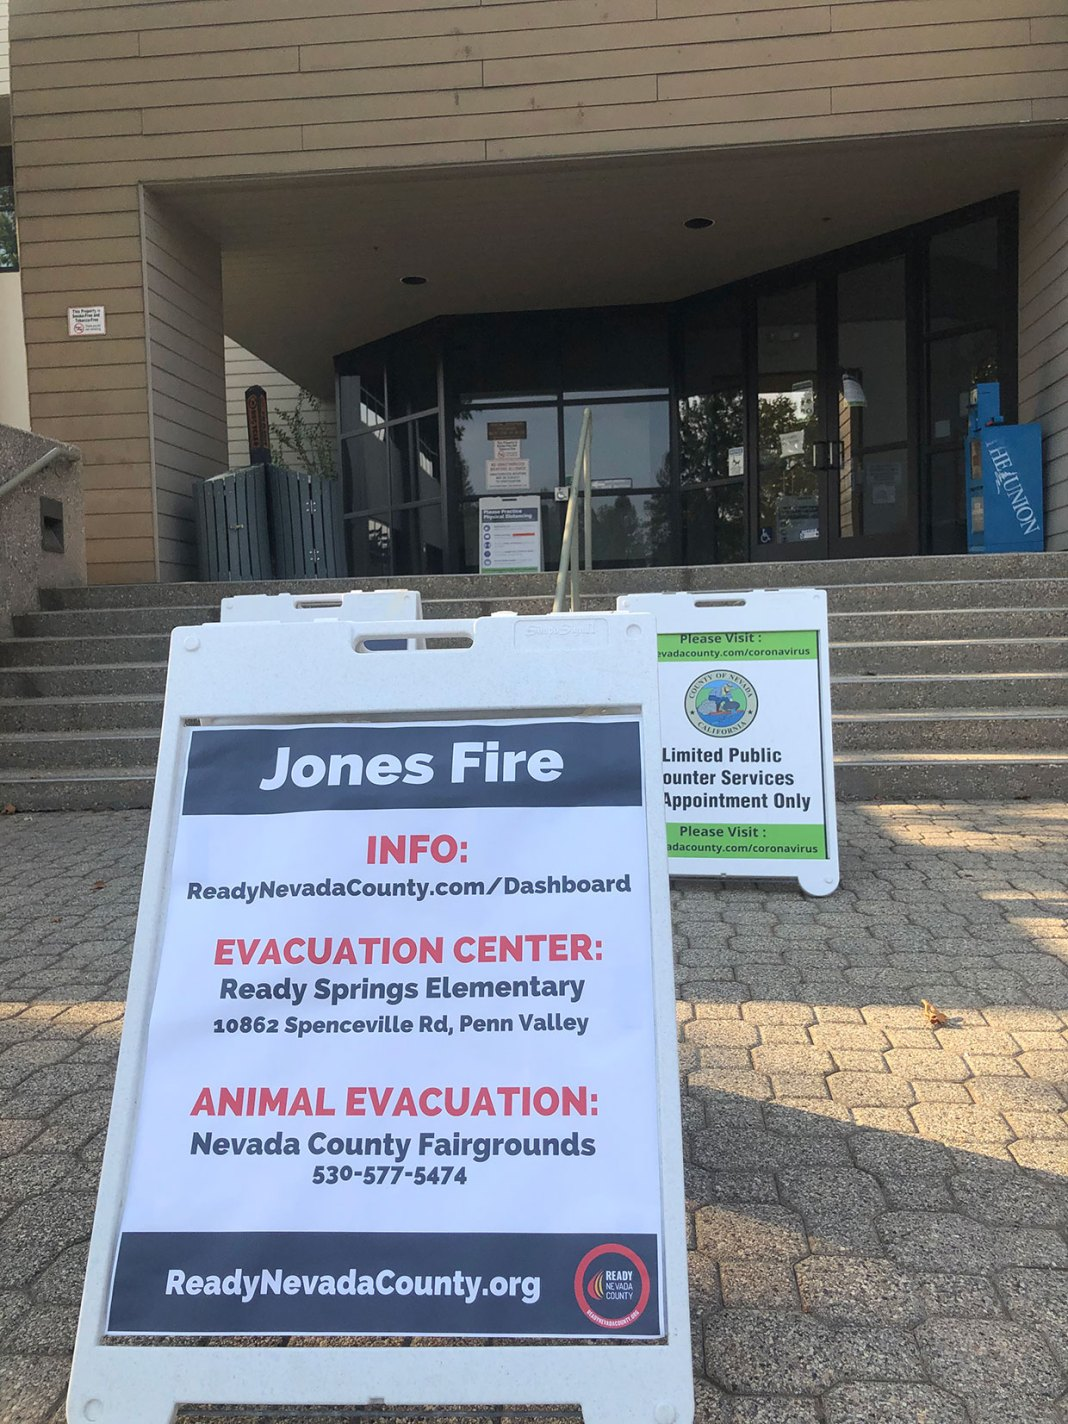 Nevada City And Grass Valley Ca Mobilize In Response To The Jones Fire The Sierra Nevada Ally